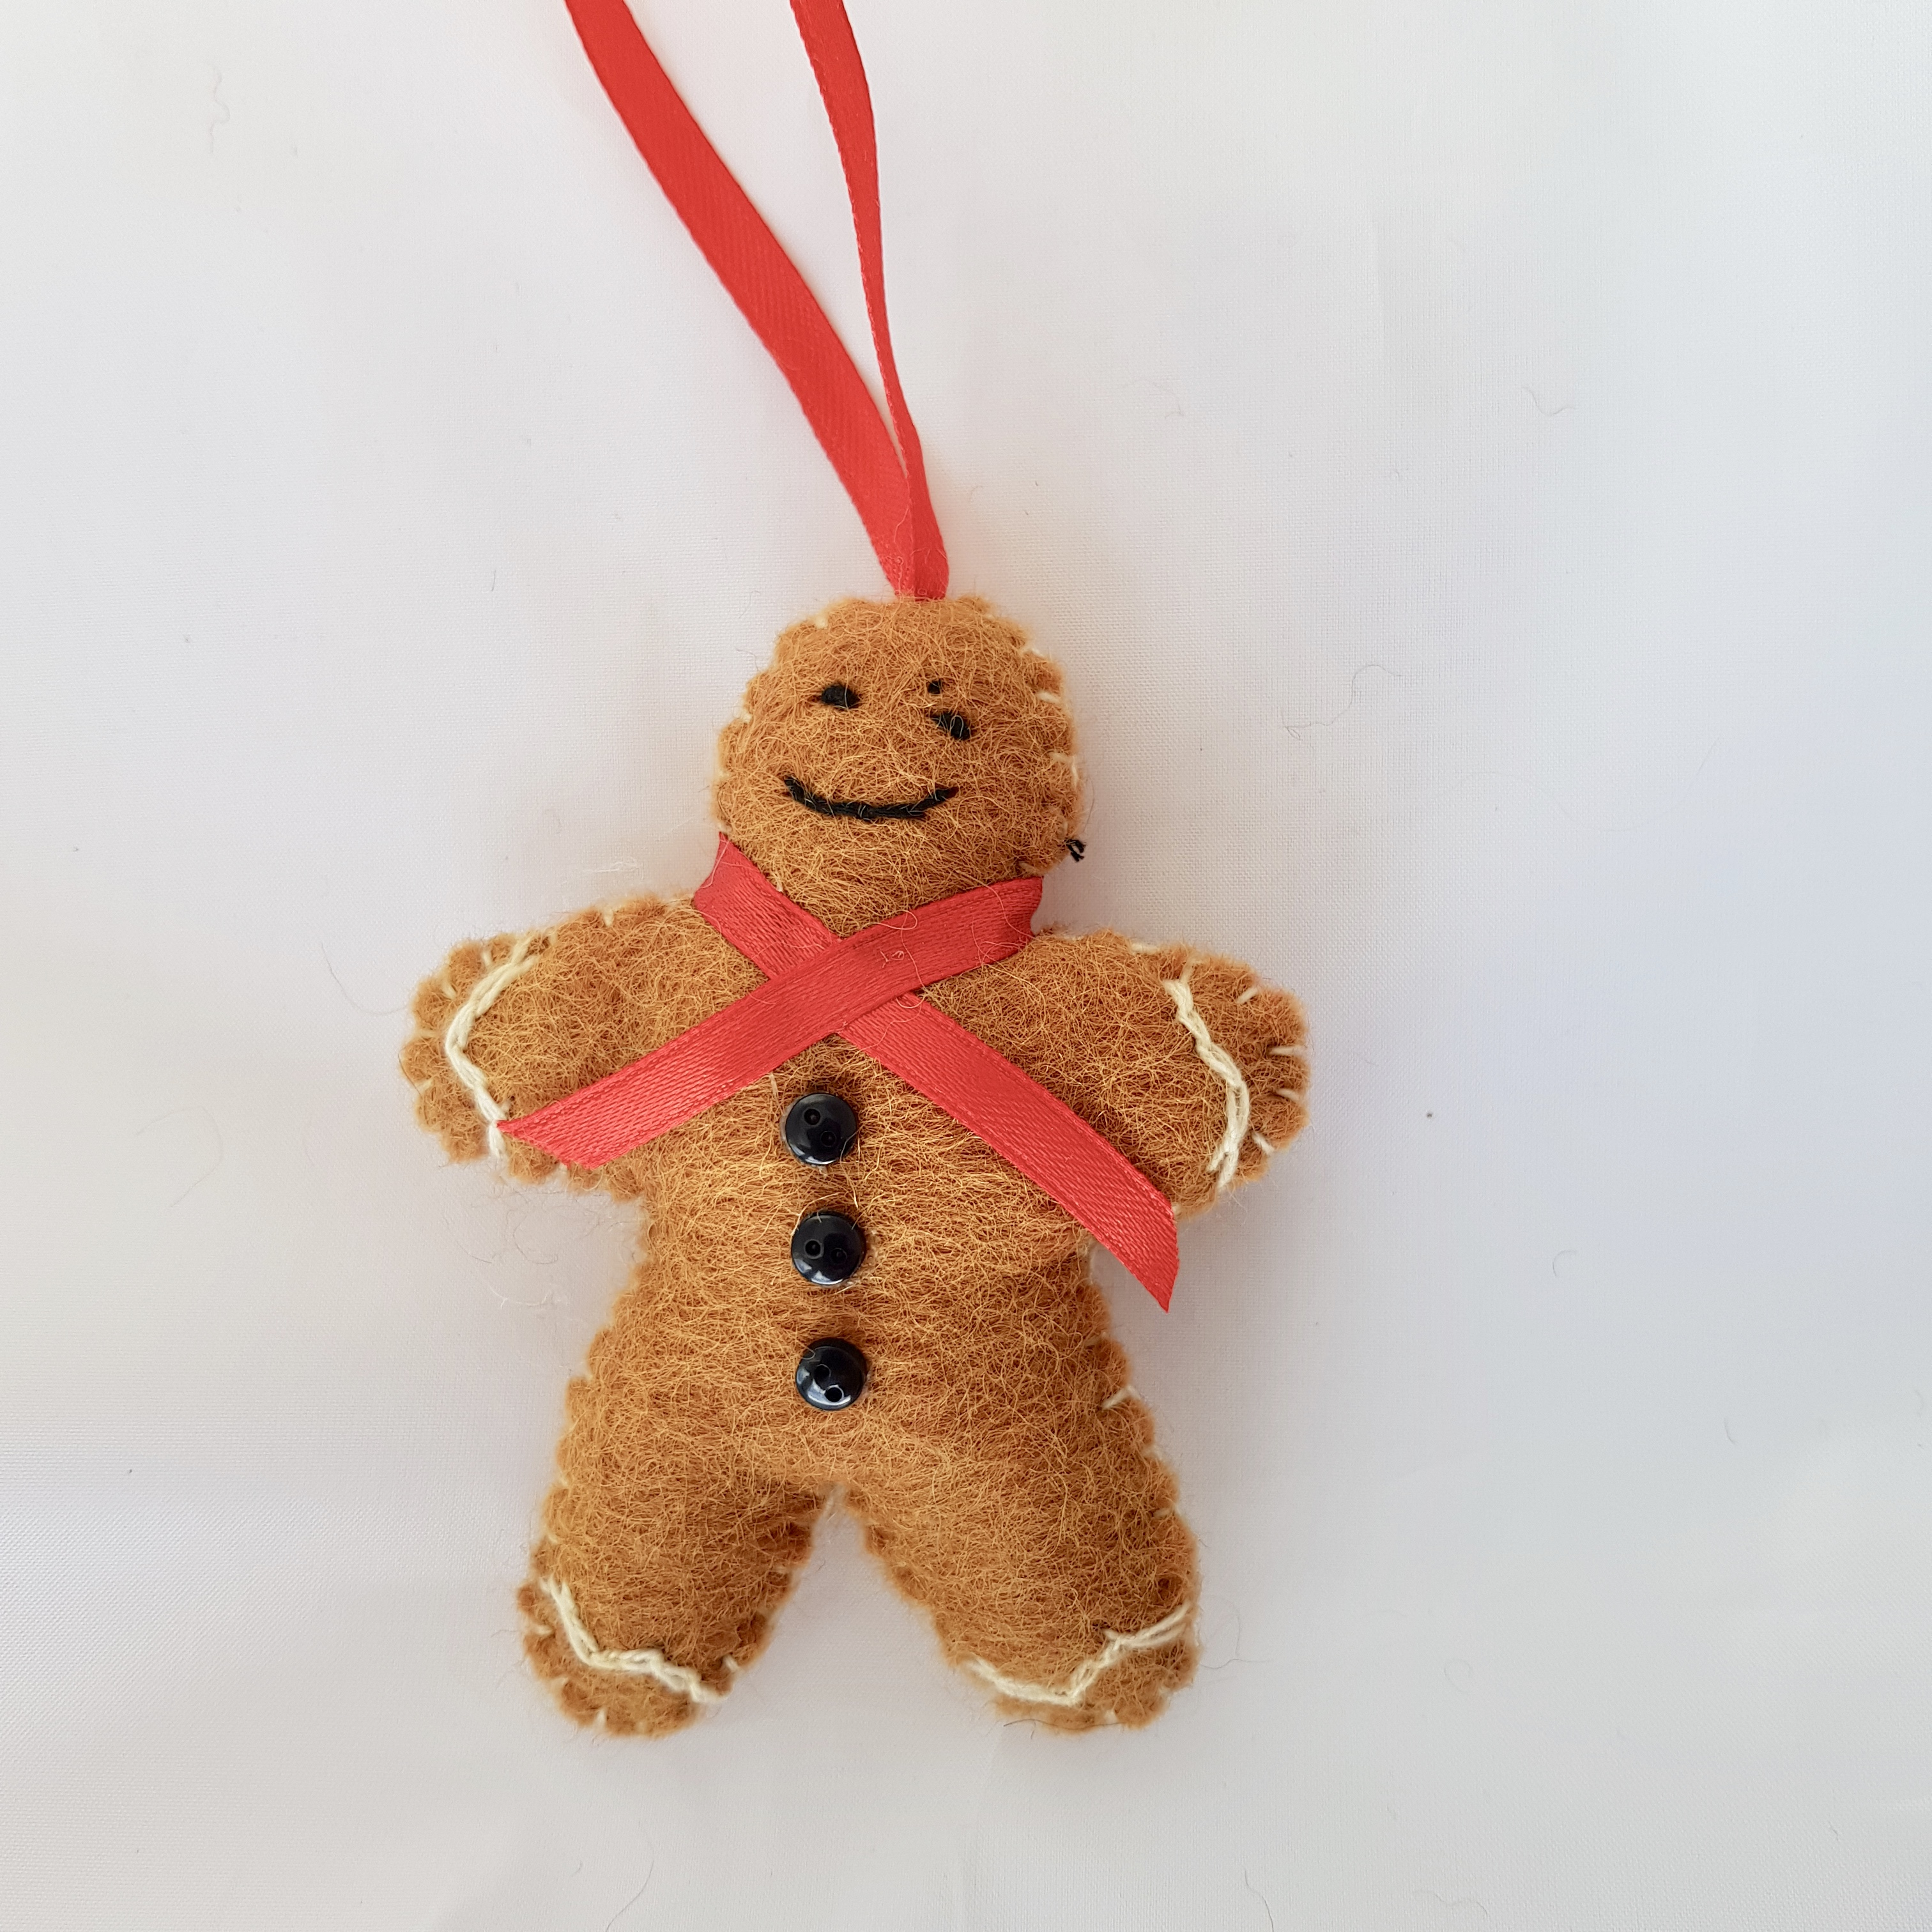 Gingerbread person tree hanging.